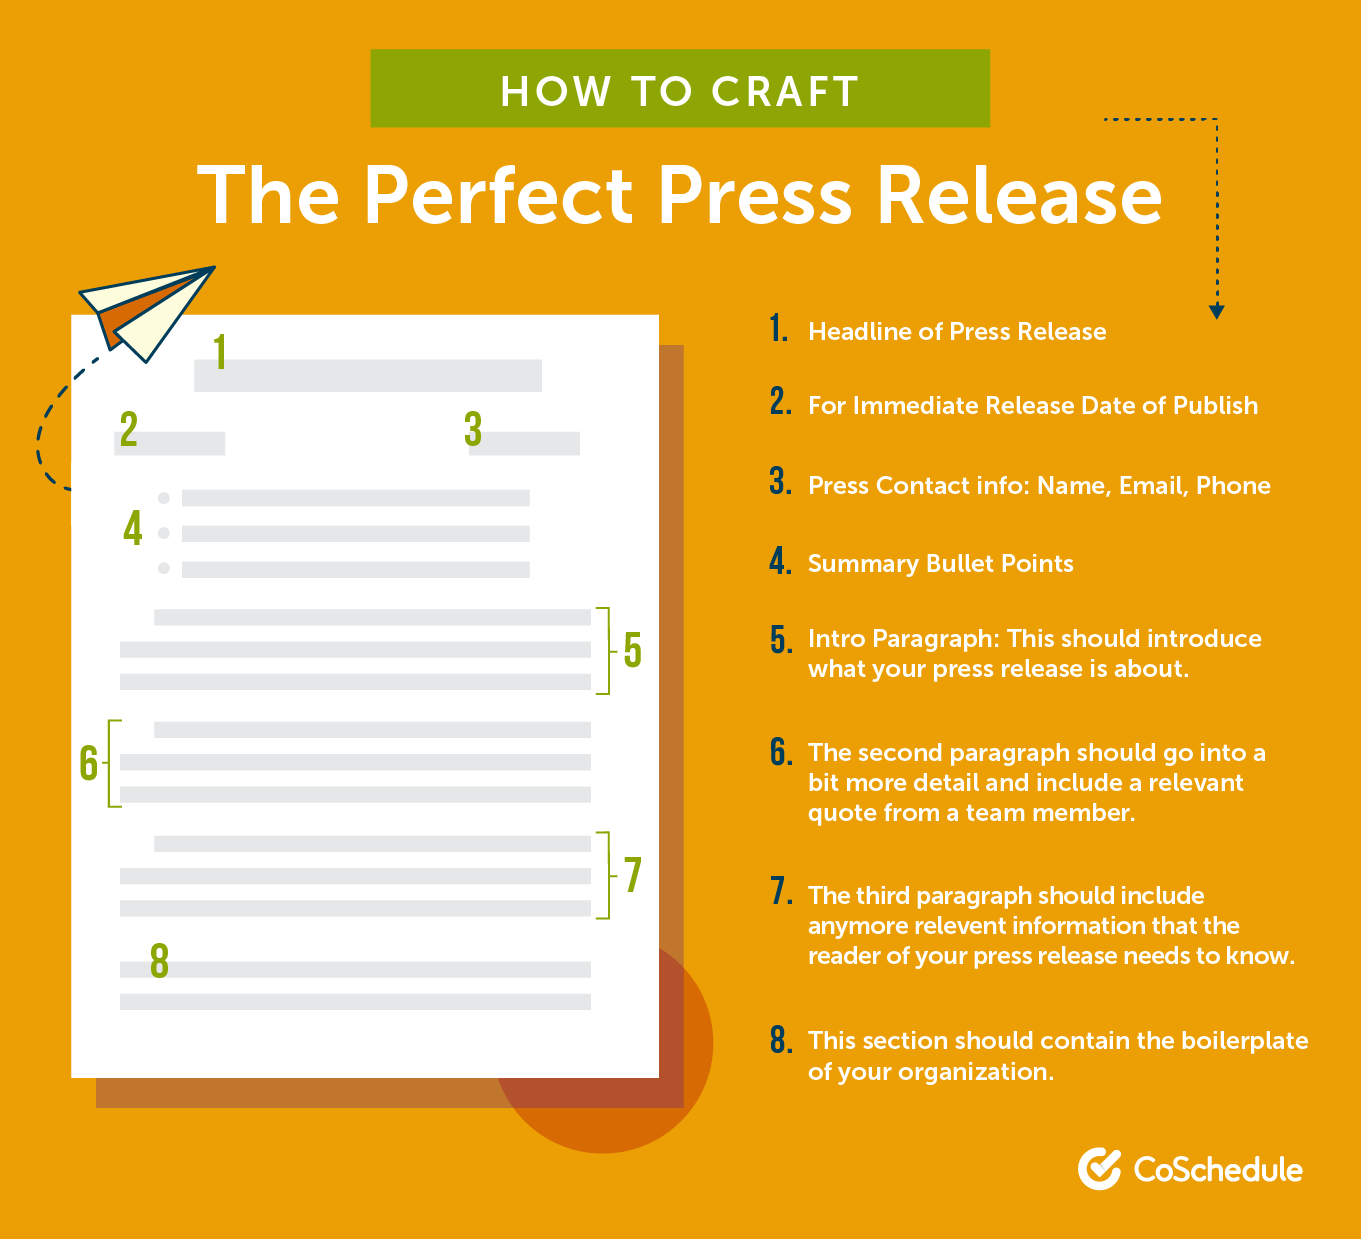 The process of creating a press release